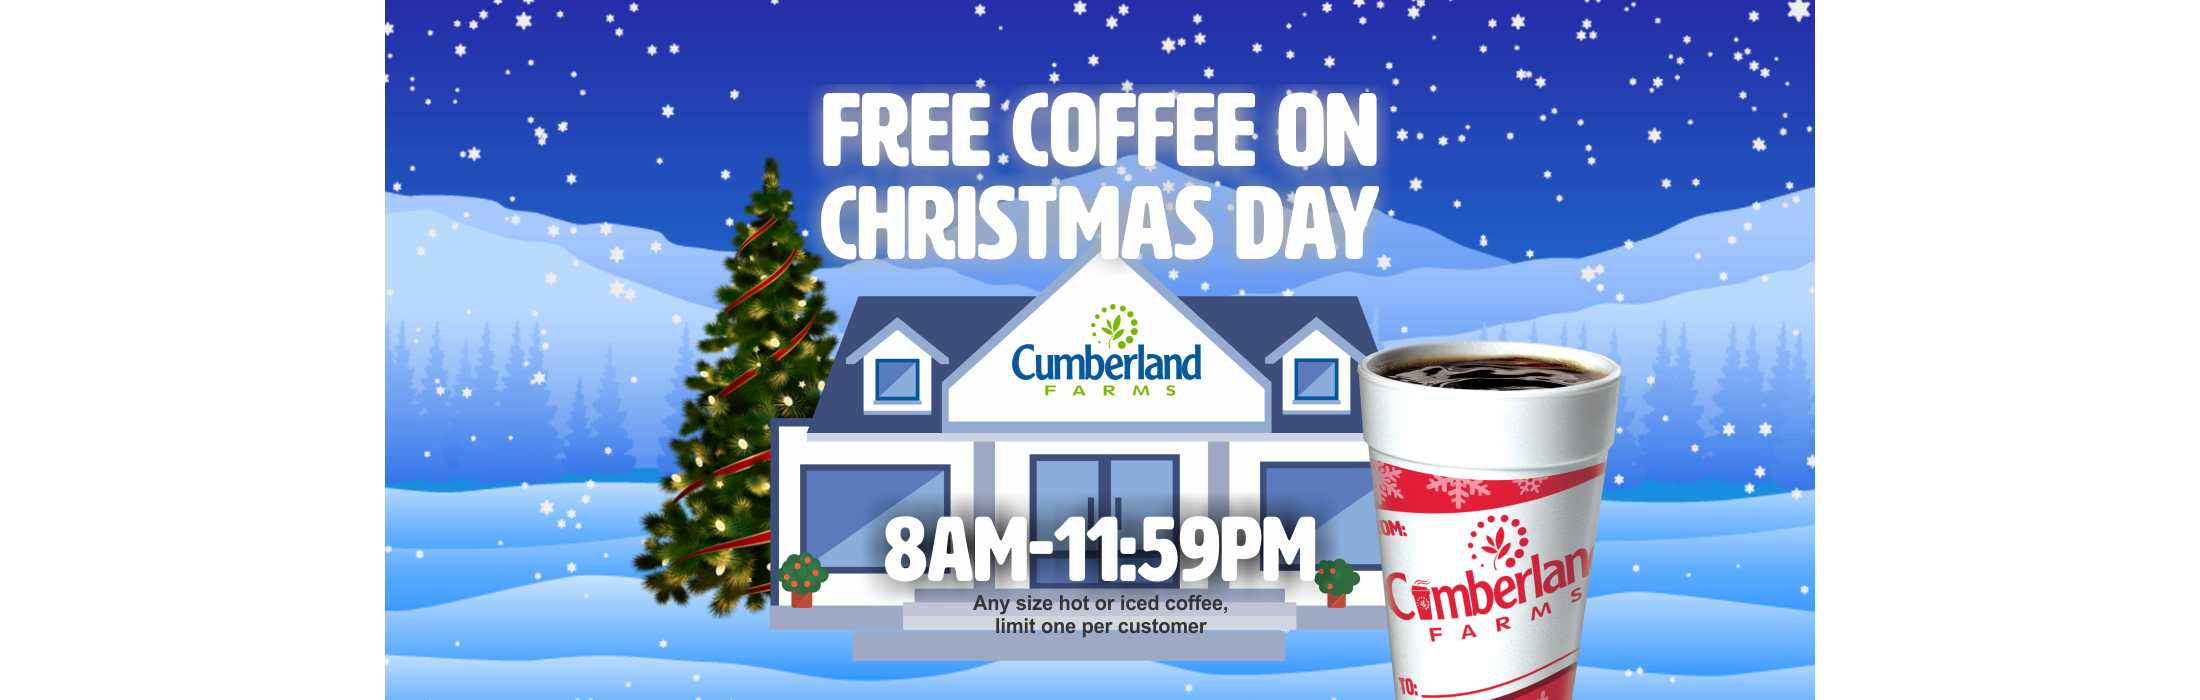 convenience stores including 7 eleven sheetz and circle k will be open 24 hours even on christmas day as usual cumberland farms is even - What Stores Will Be Open Christmas Day